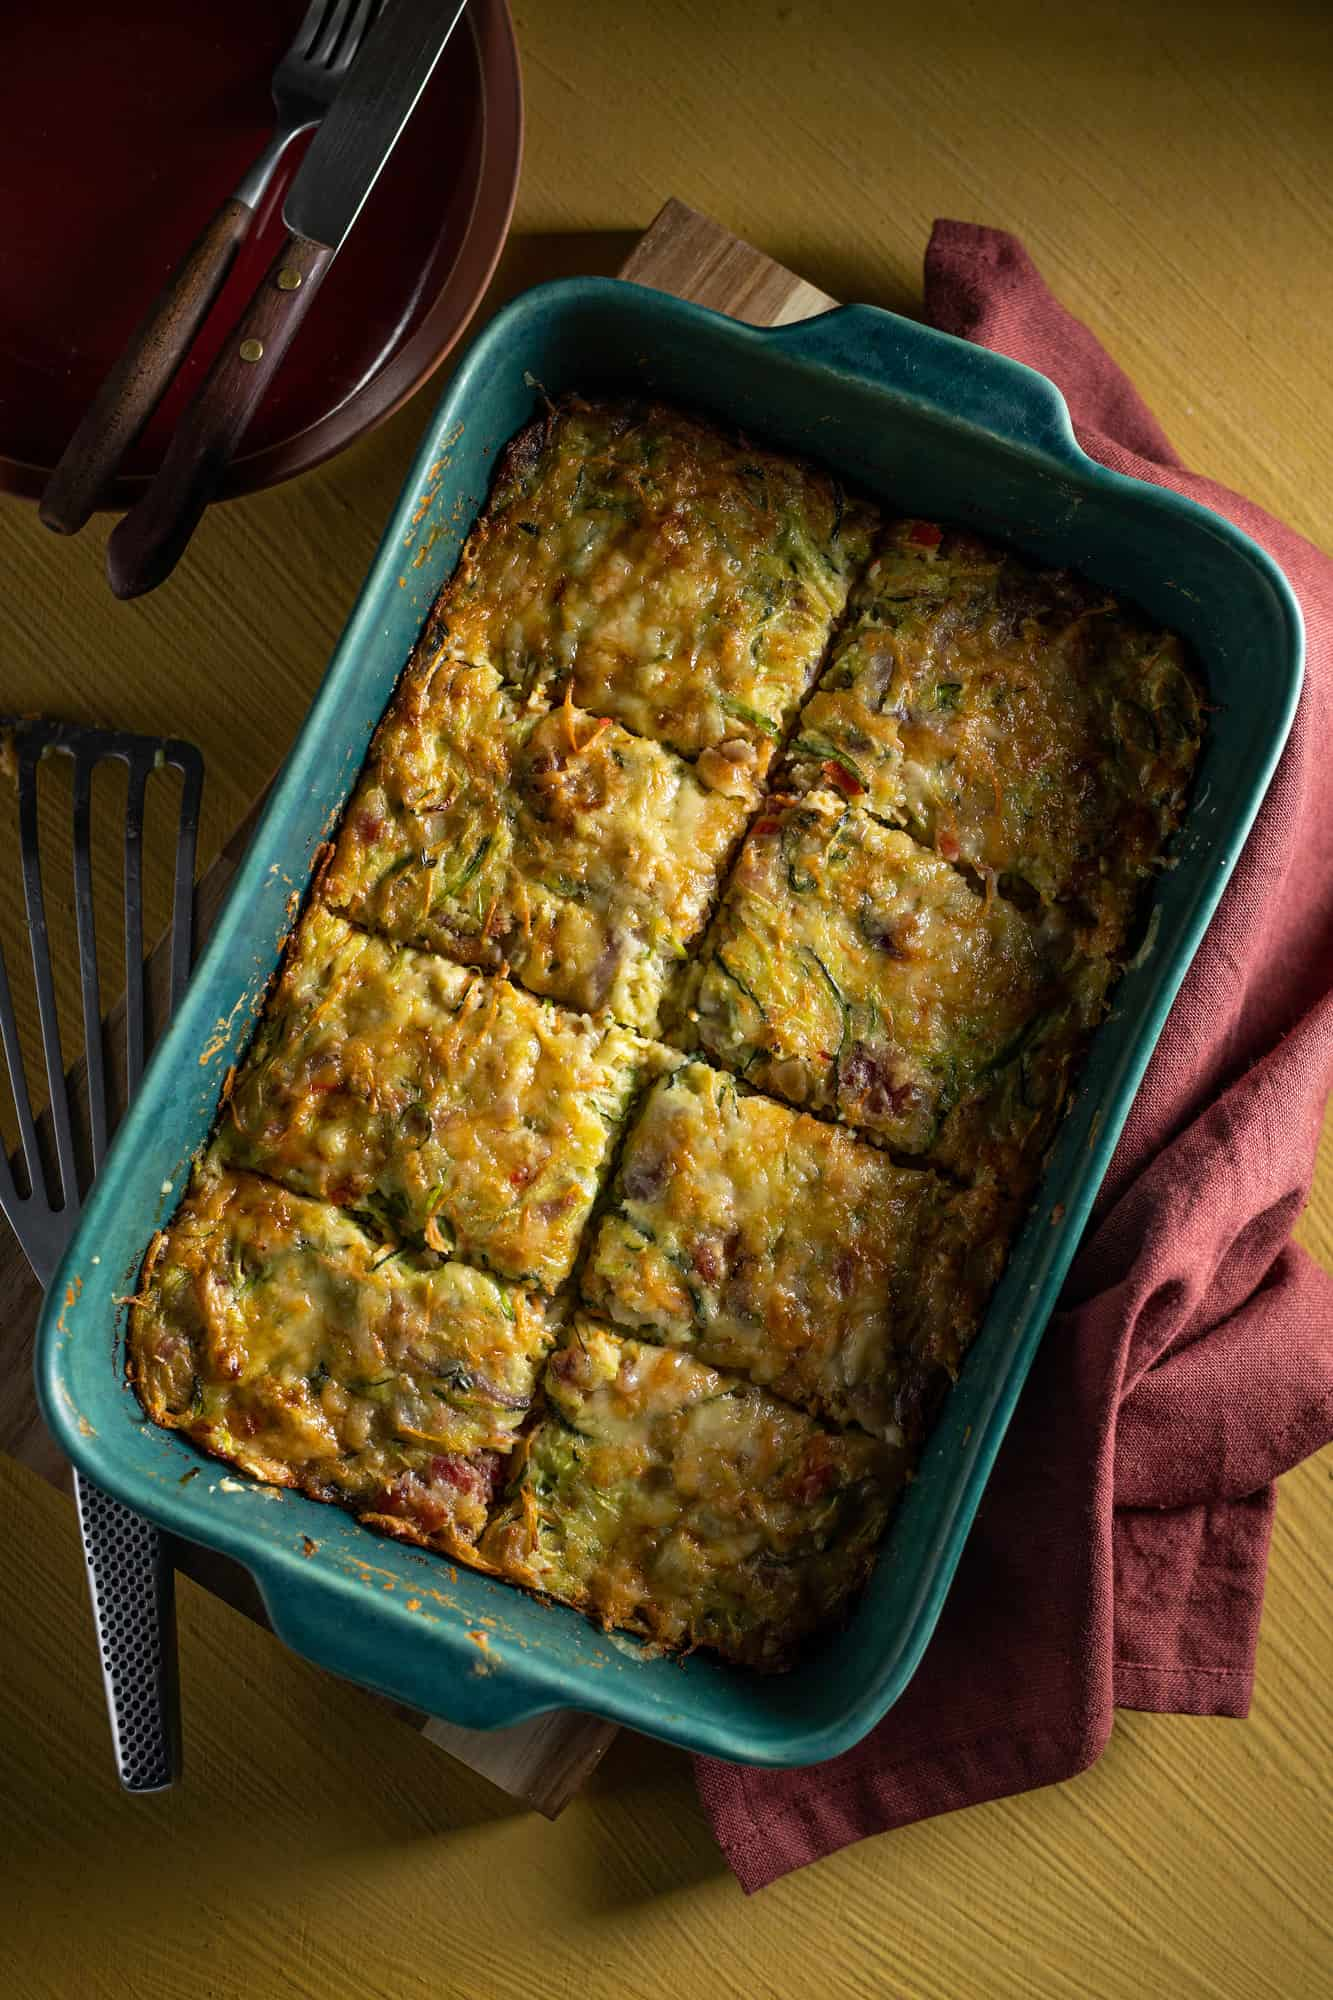 Courgette Wortel Baksel